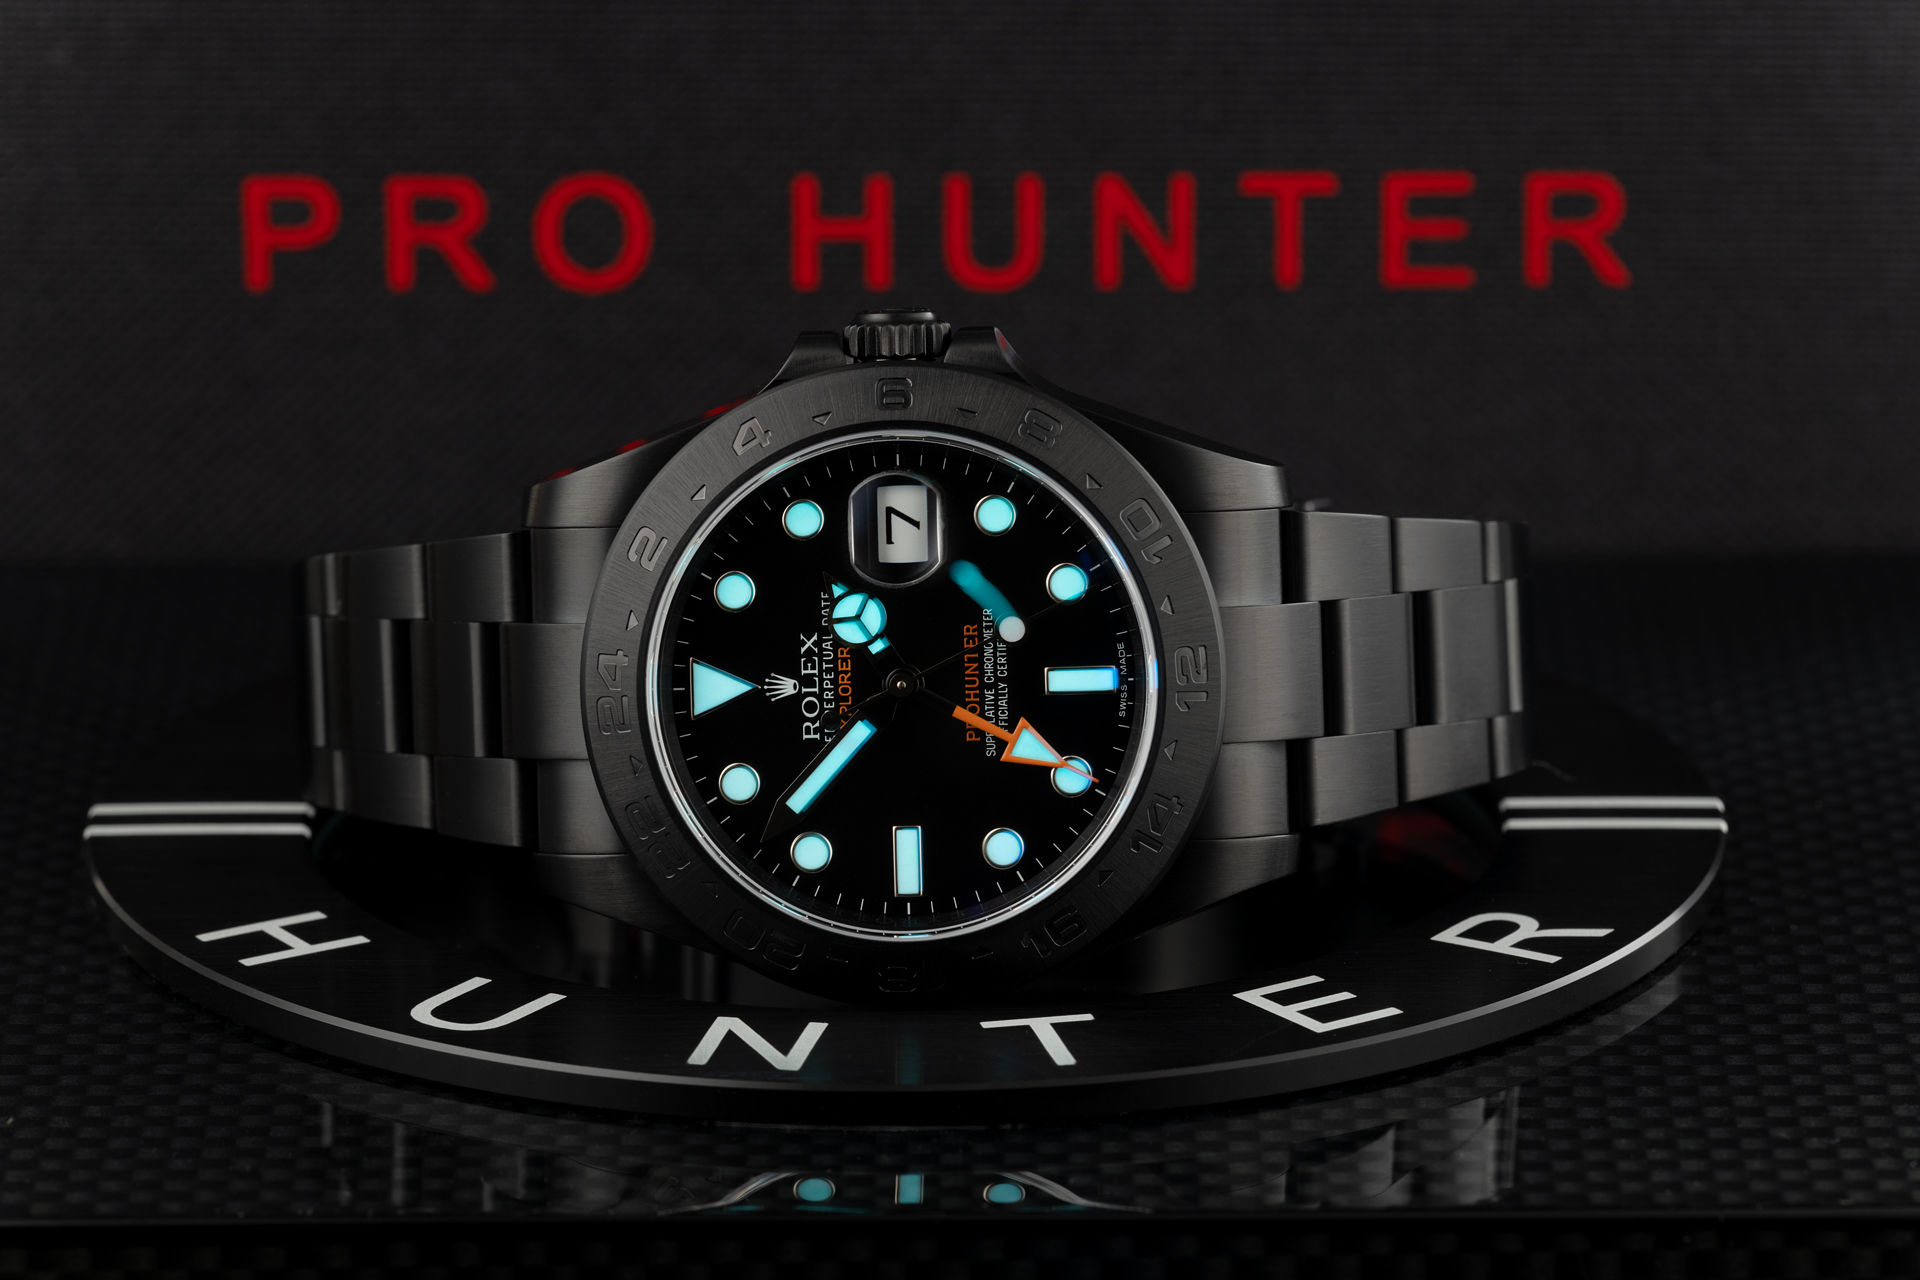 ref 216570 | 'One of 100' | Pro Hunter Explorer II